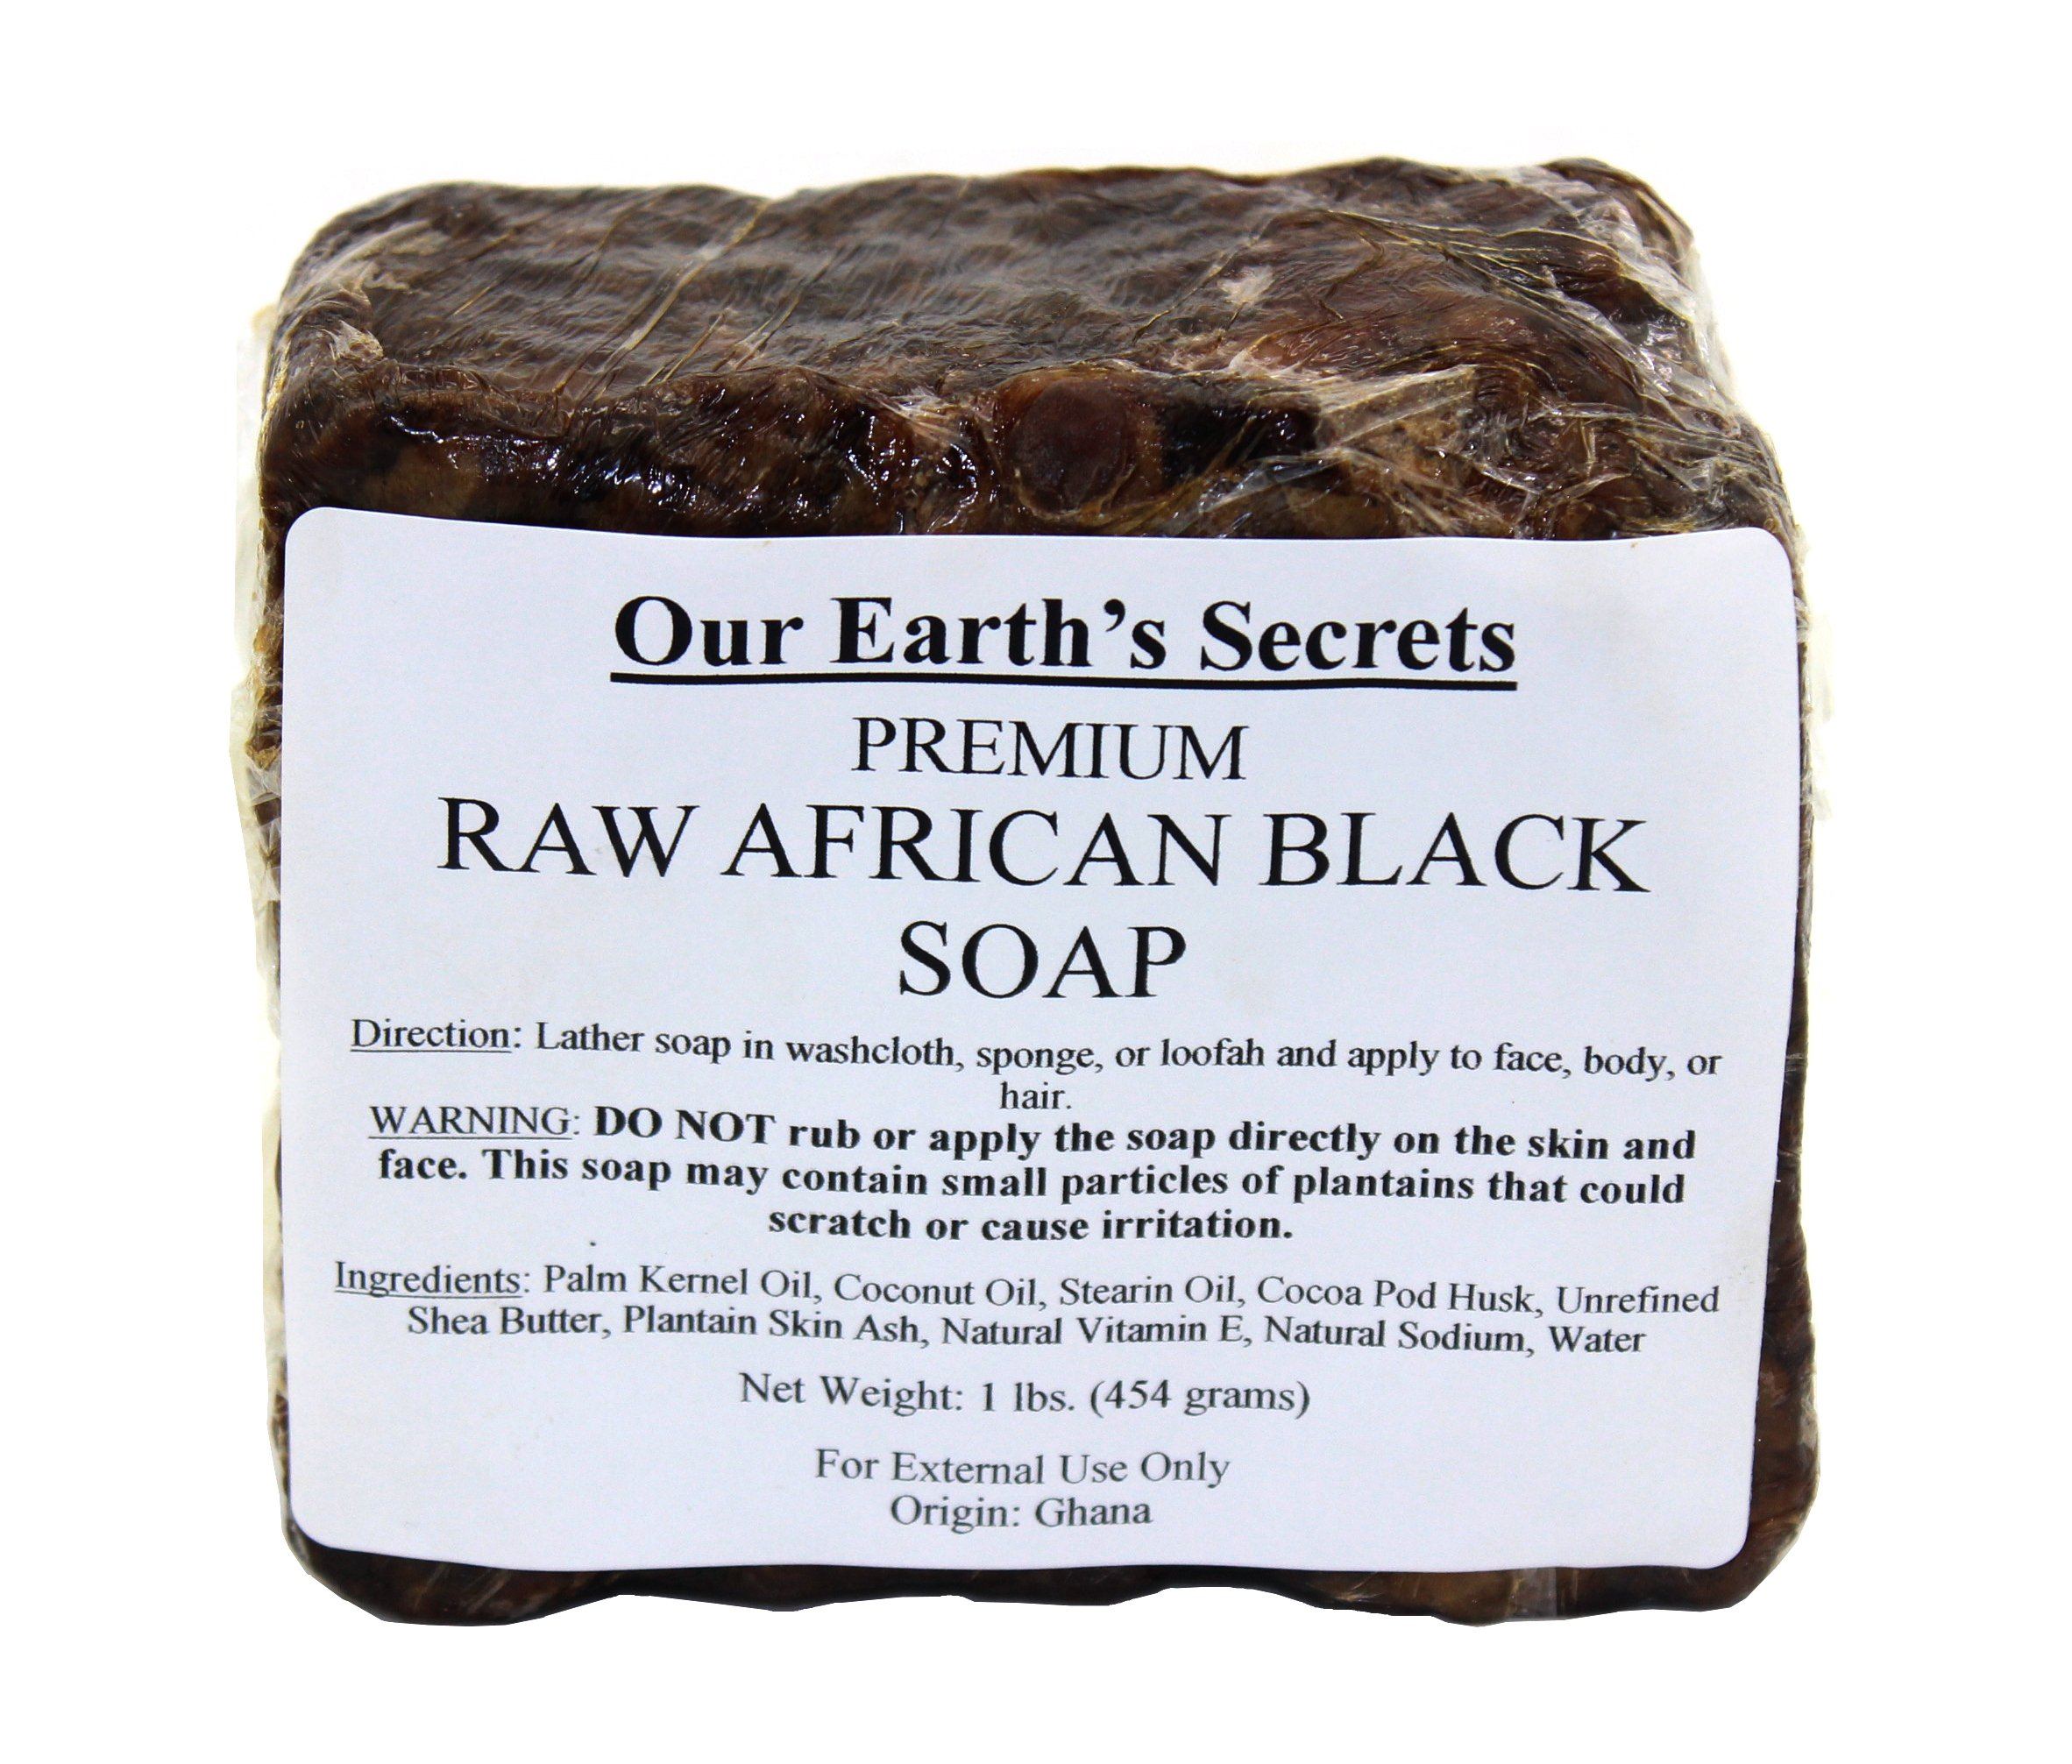 Our Earth's Secrets Raw African Black Soap, 1 lb. by Our Earth's Secrets (Image #1)